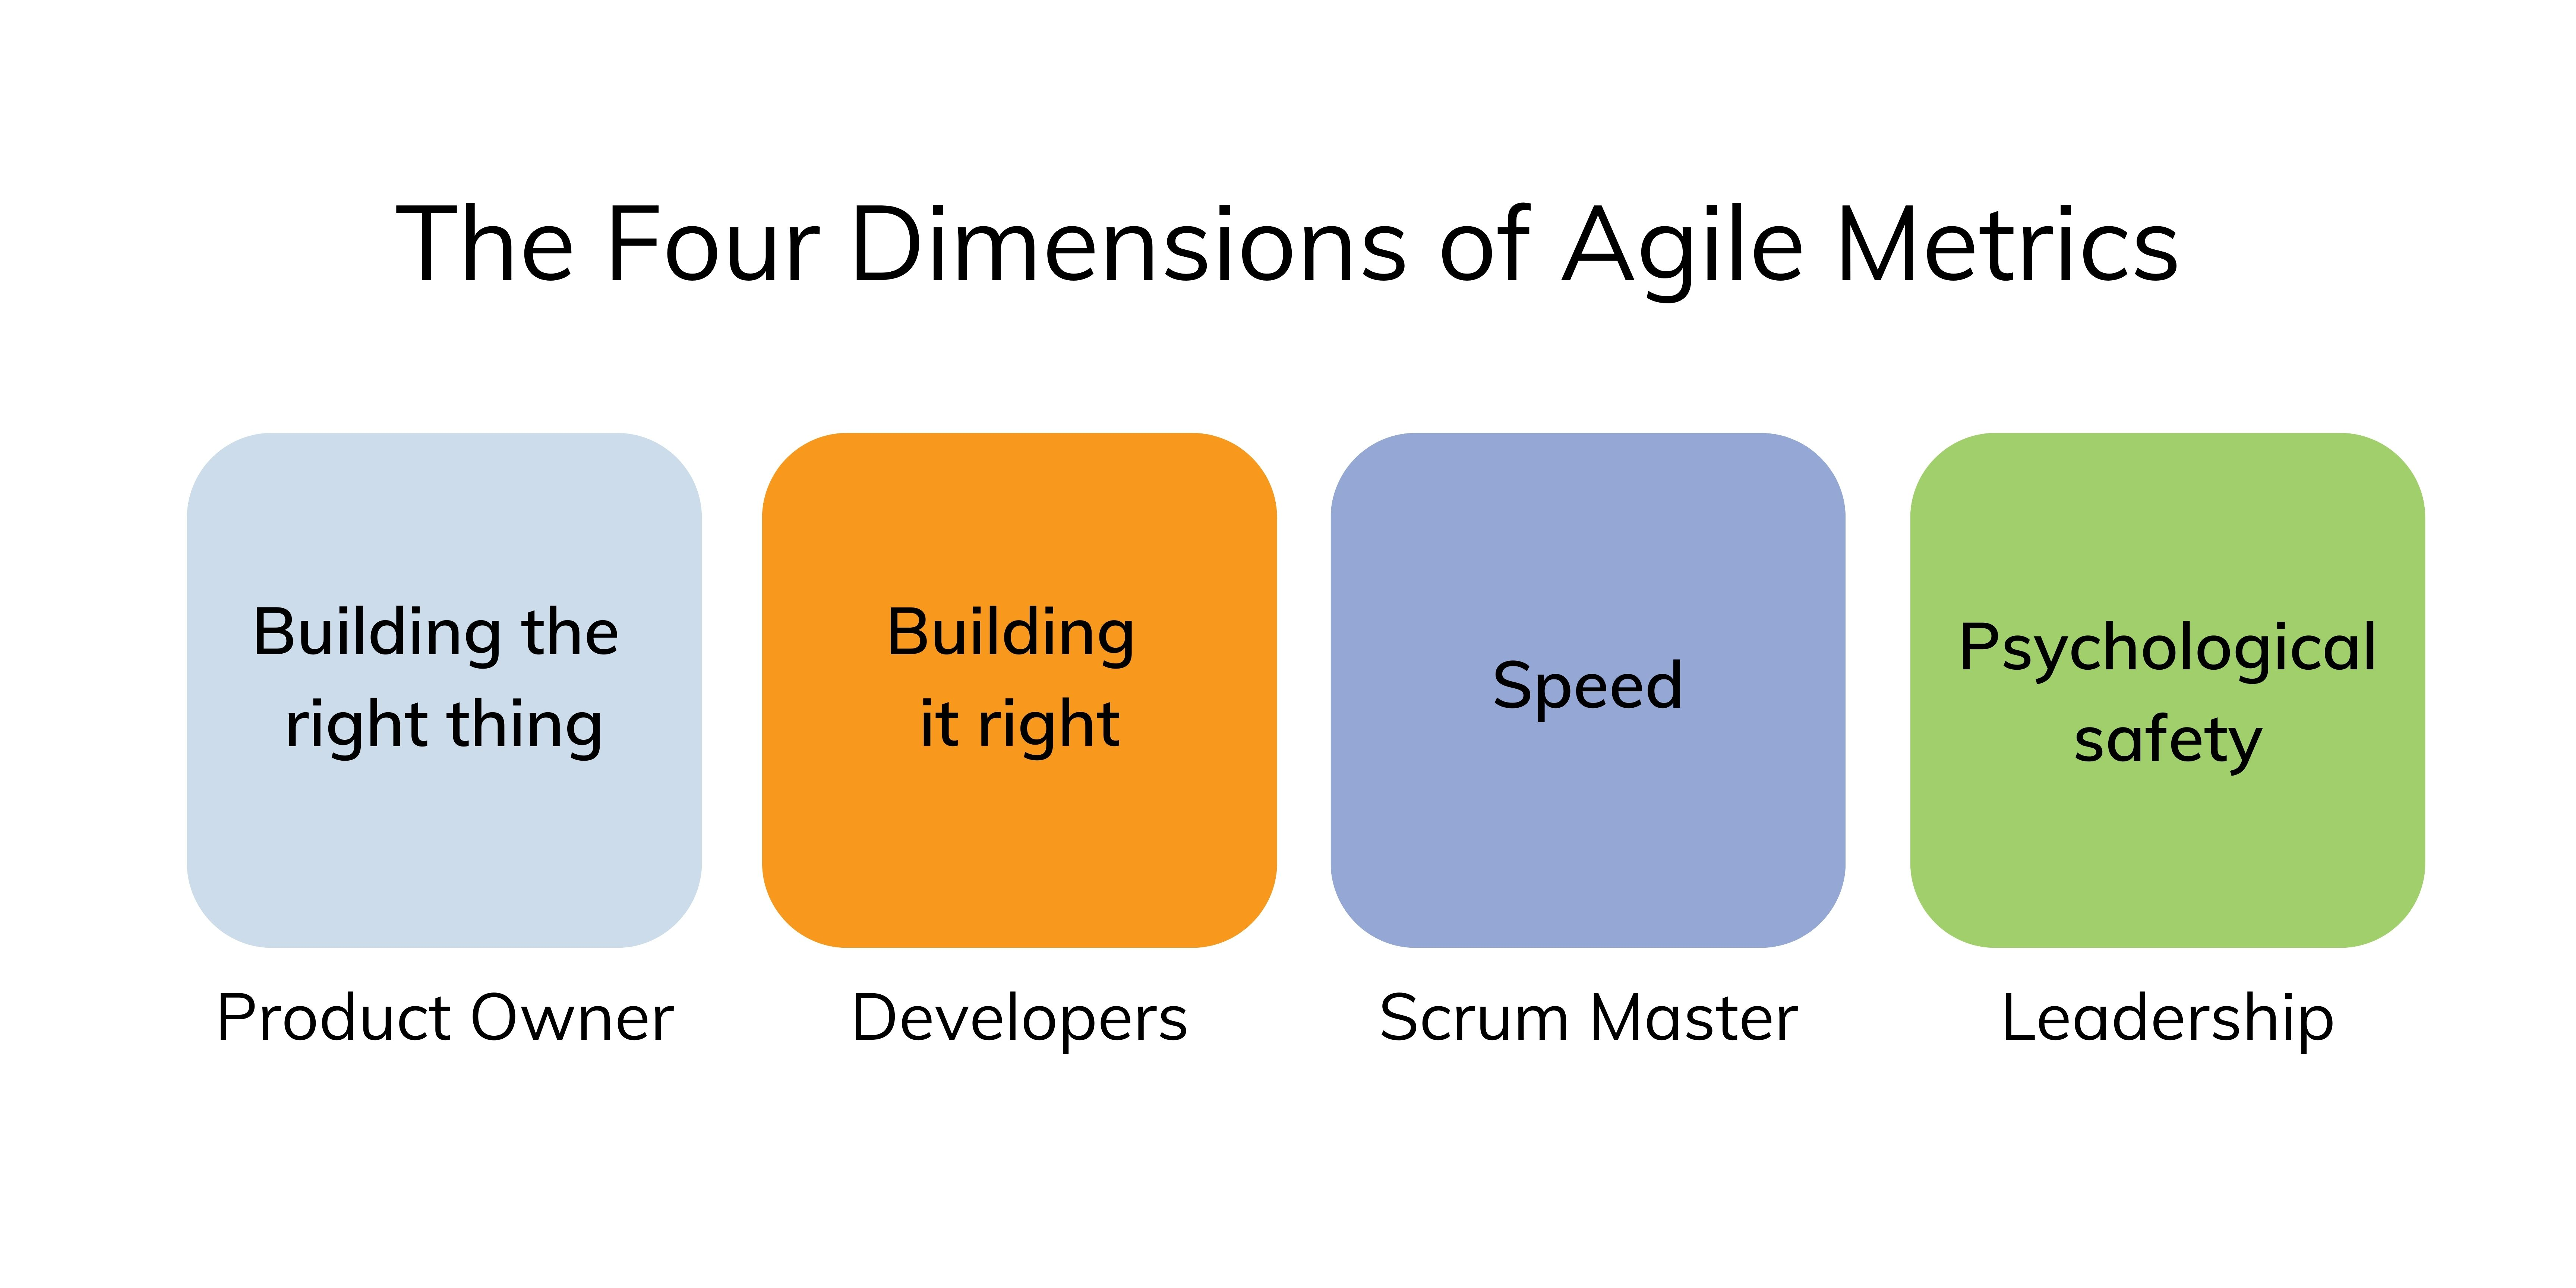 The Four Dimensions of Agile Metrics: Product Owner, Developers, Scrum Master, Leadership